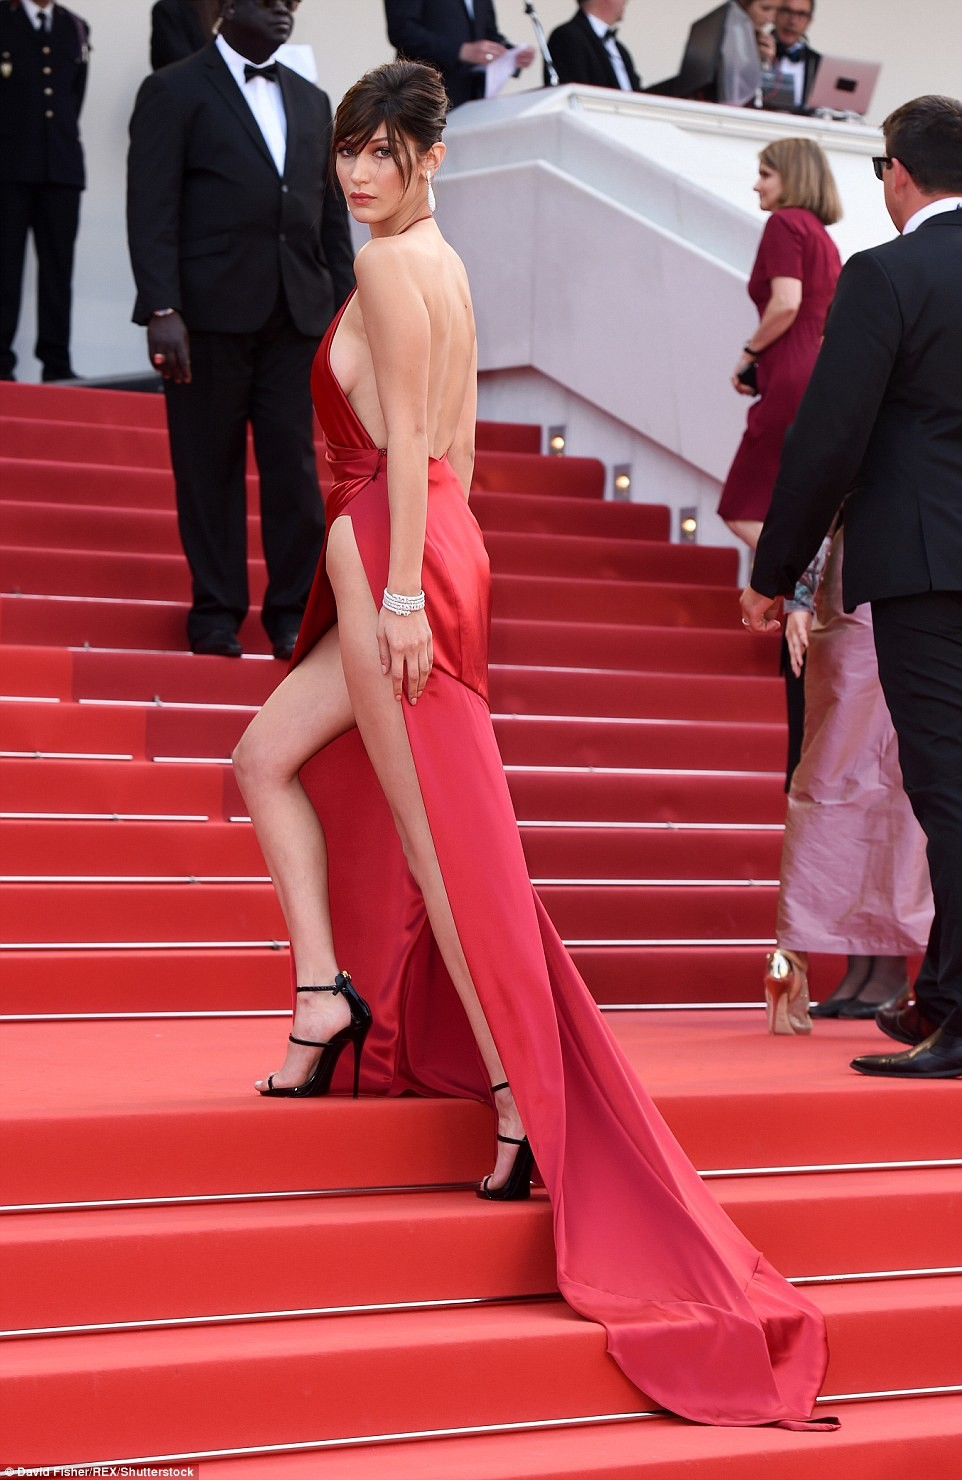 bella hadid red dress cannes 2016 (9)